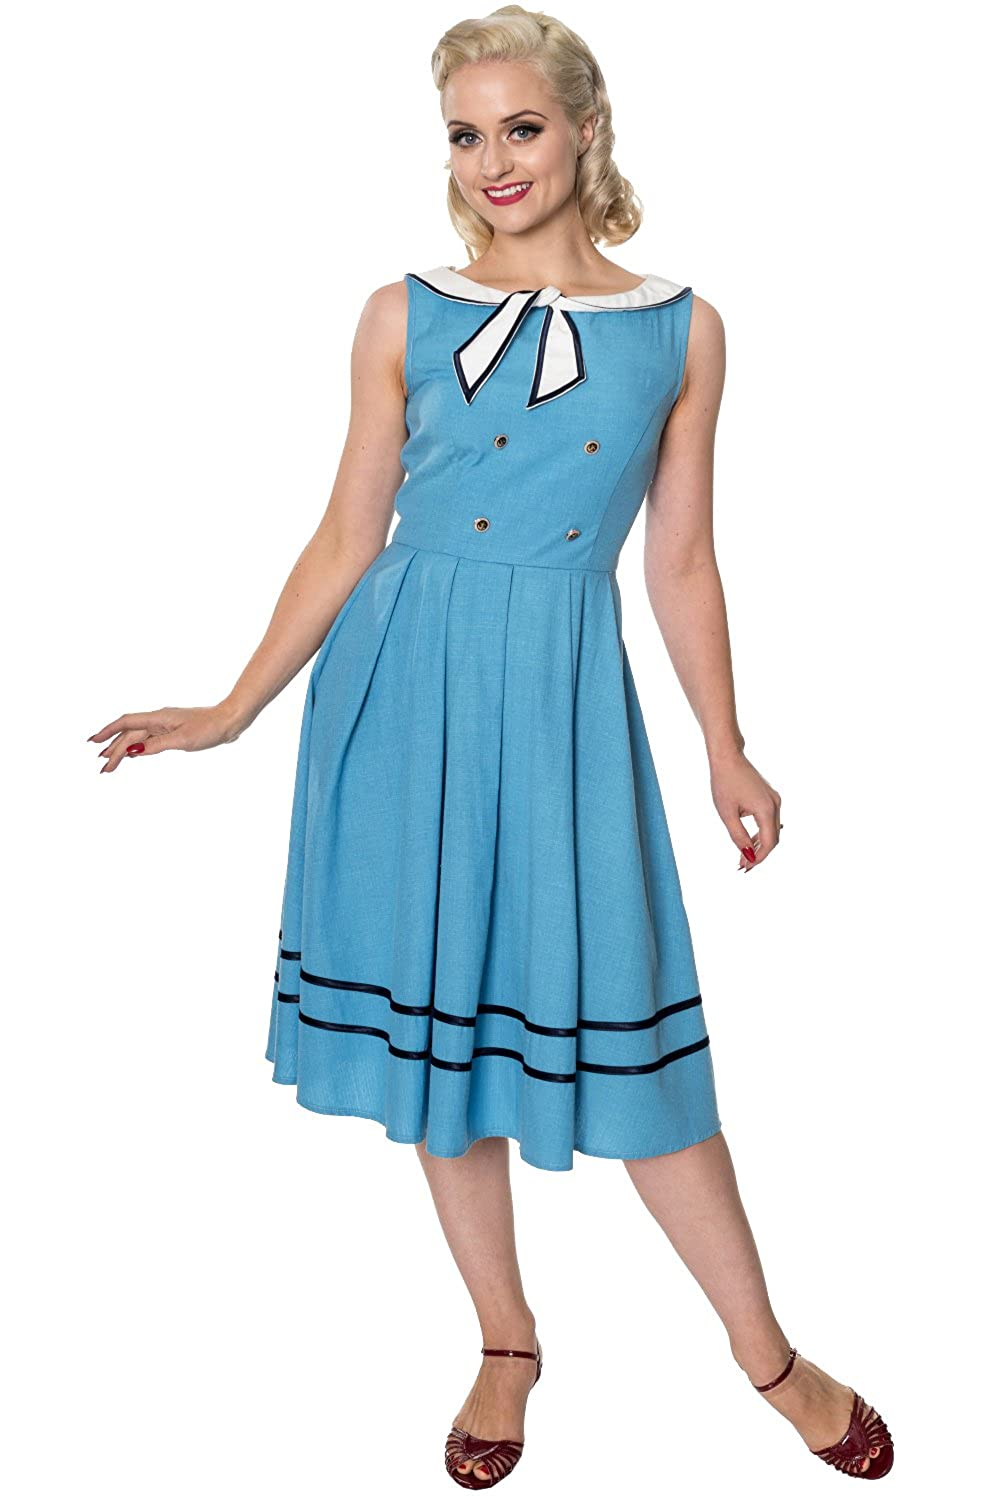 Sailor Dresses, Nautical Theme Dress, WW2 Dresses Banned Aquarius Vintage Dress $49.95 AT vintagedancer.com